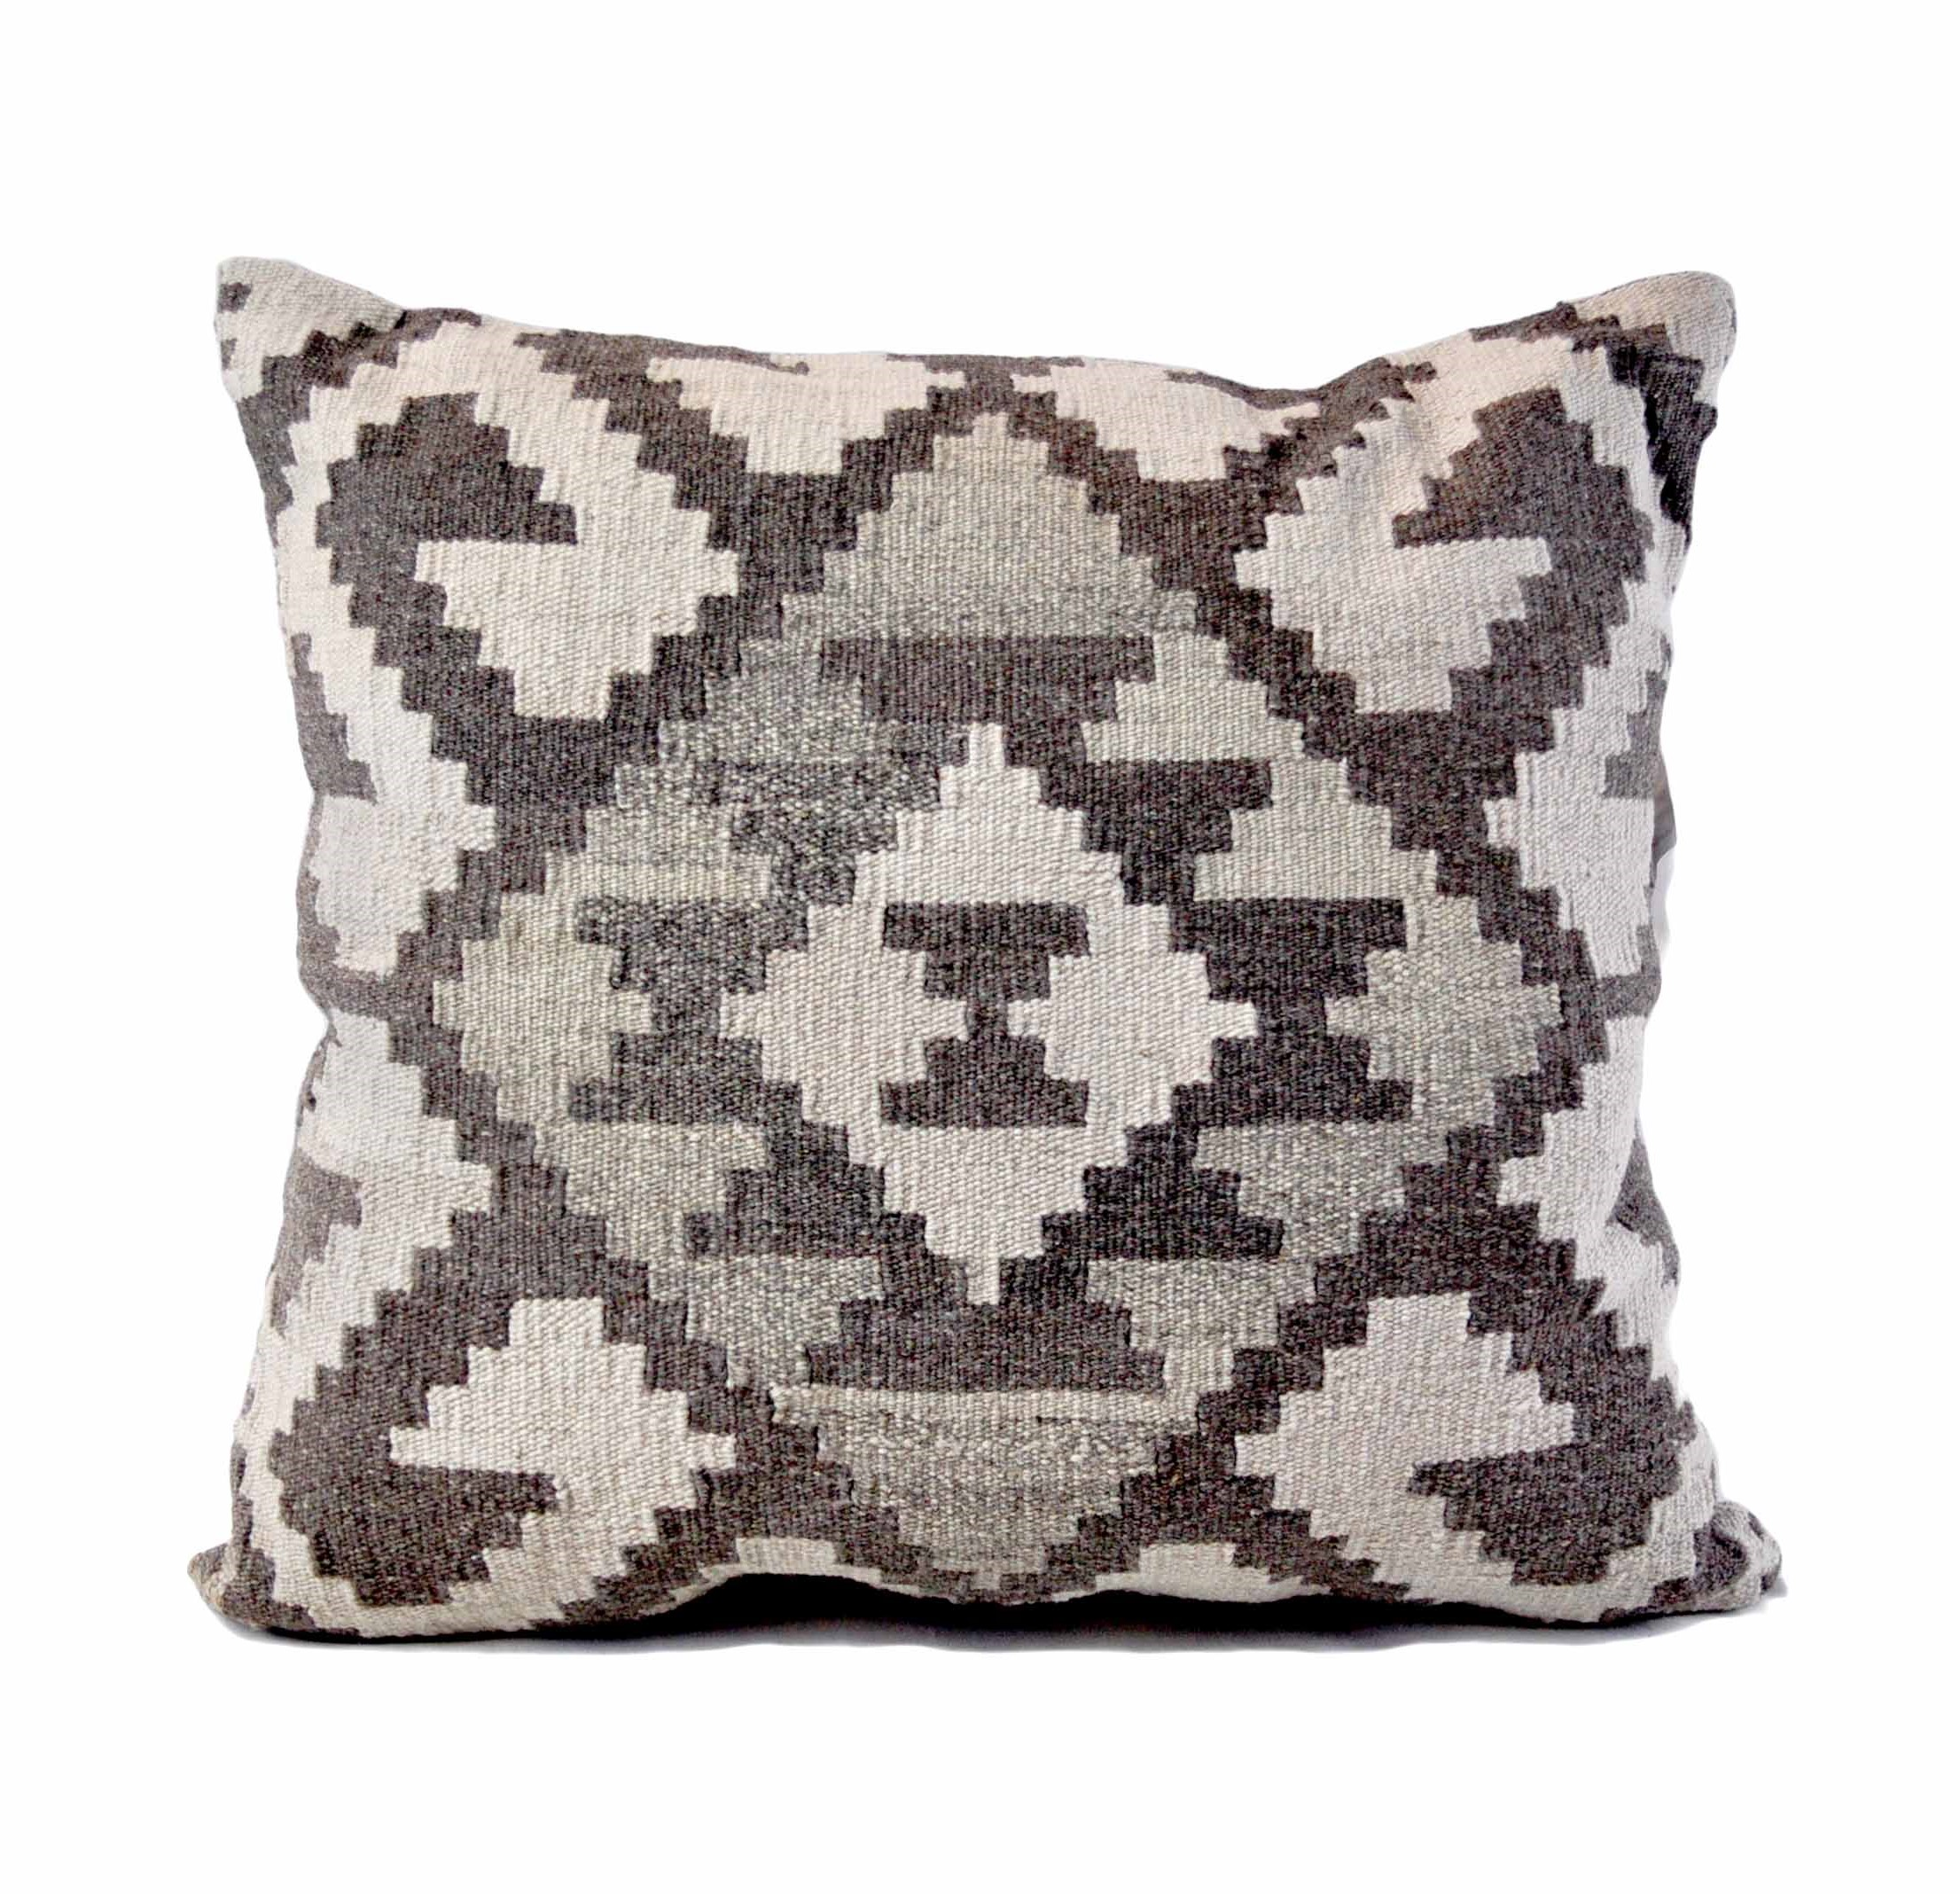 24×24 Hand-woven Wool Kilim Pillow Cover 12981030